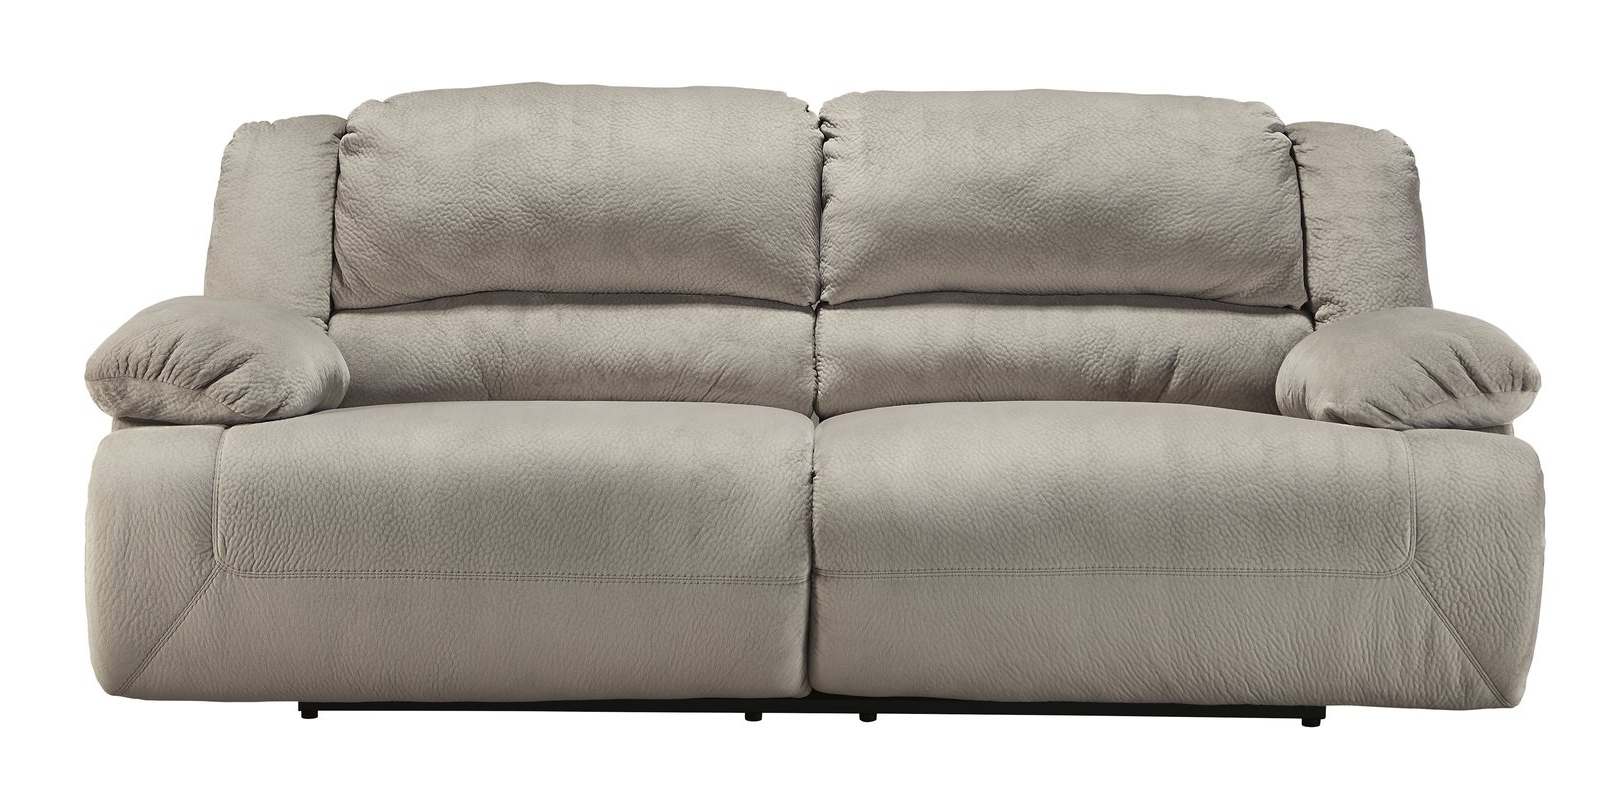 Trendy Signature Designashley Tolette 2 Seat Reclining Sofa & Reviews intended for 2 Seat Recliner Sofas